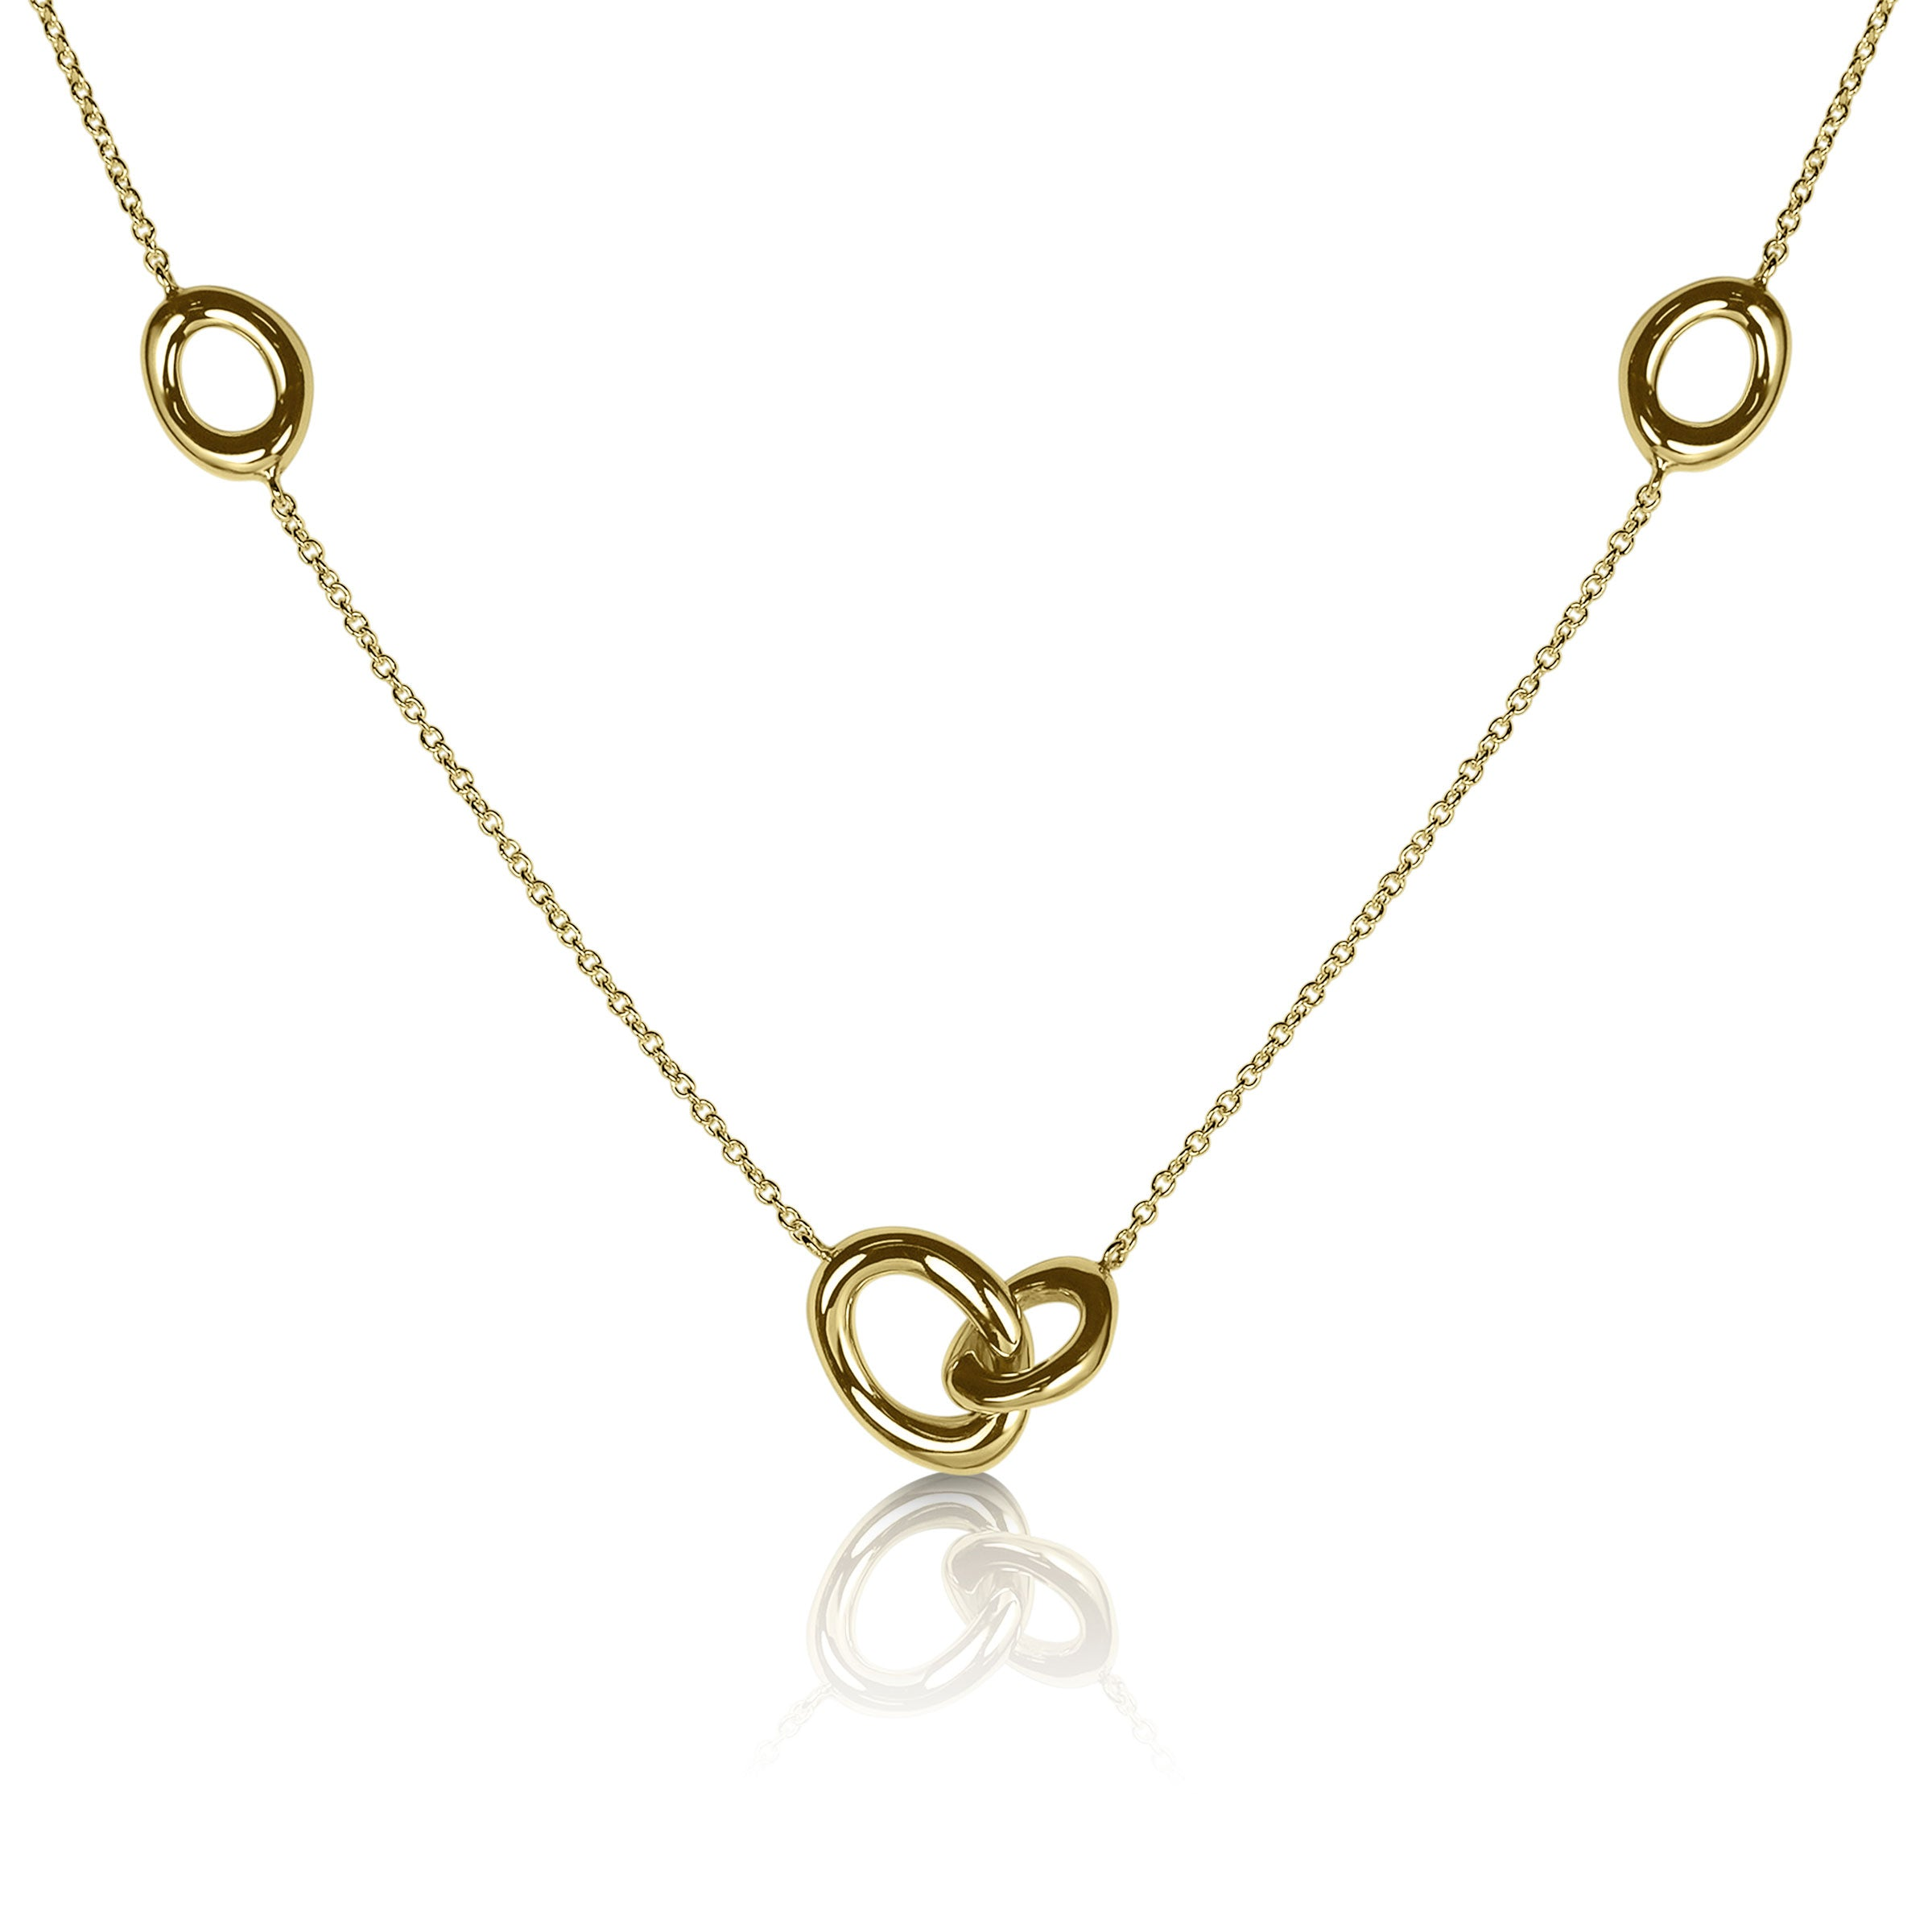 Oval Link and Chain Necklace, 14K Yellow Gold